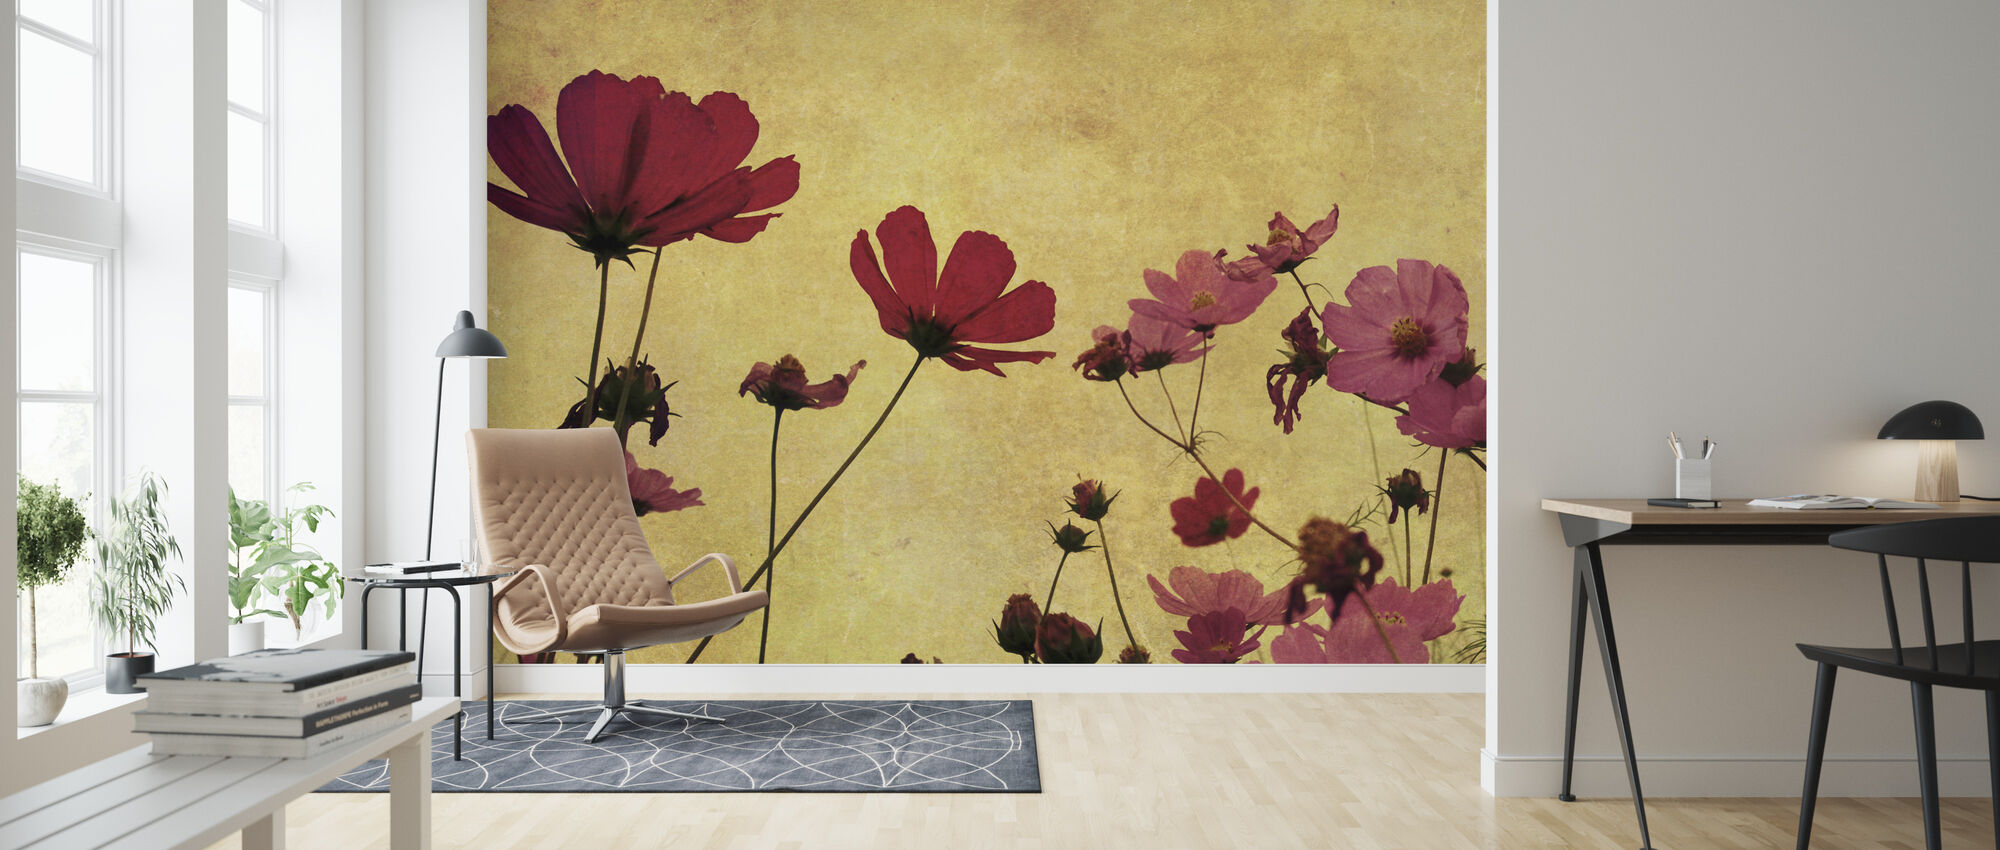 Old Fashioned Flower - Wallpaper - Living Room